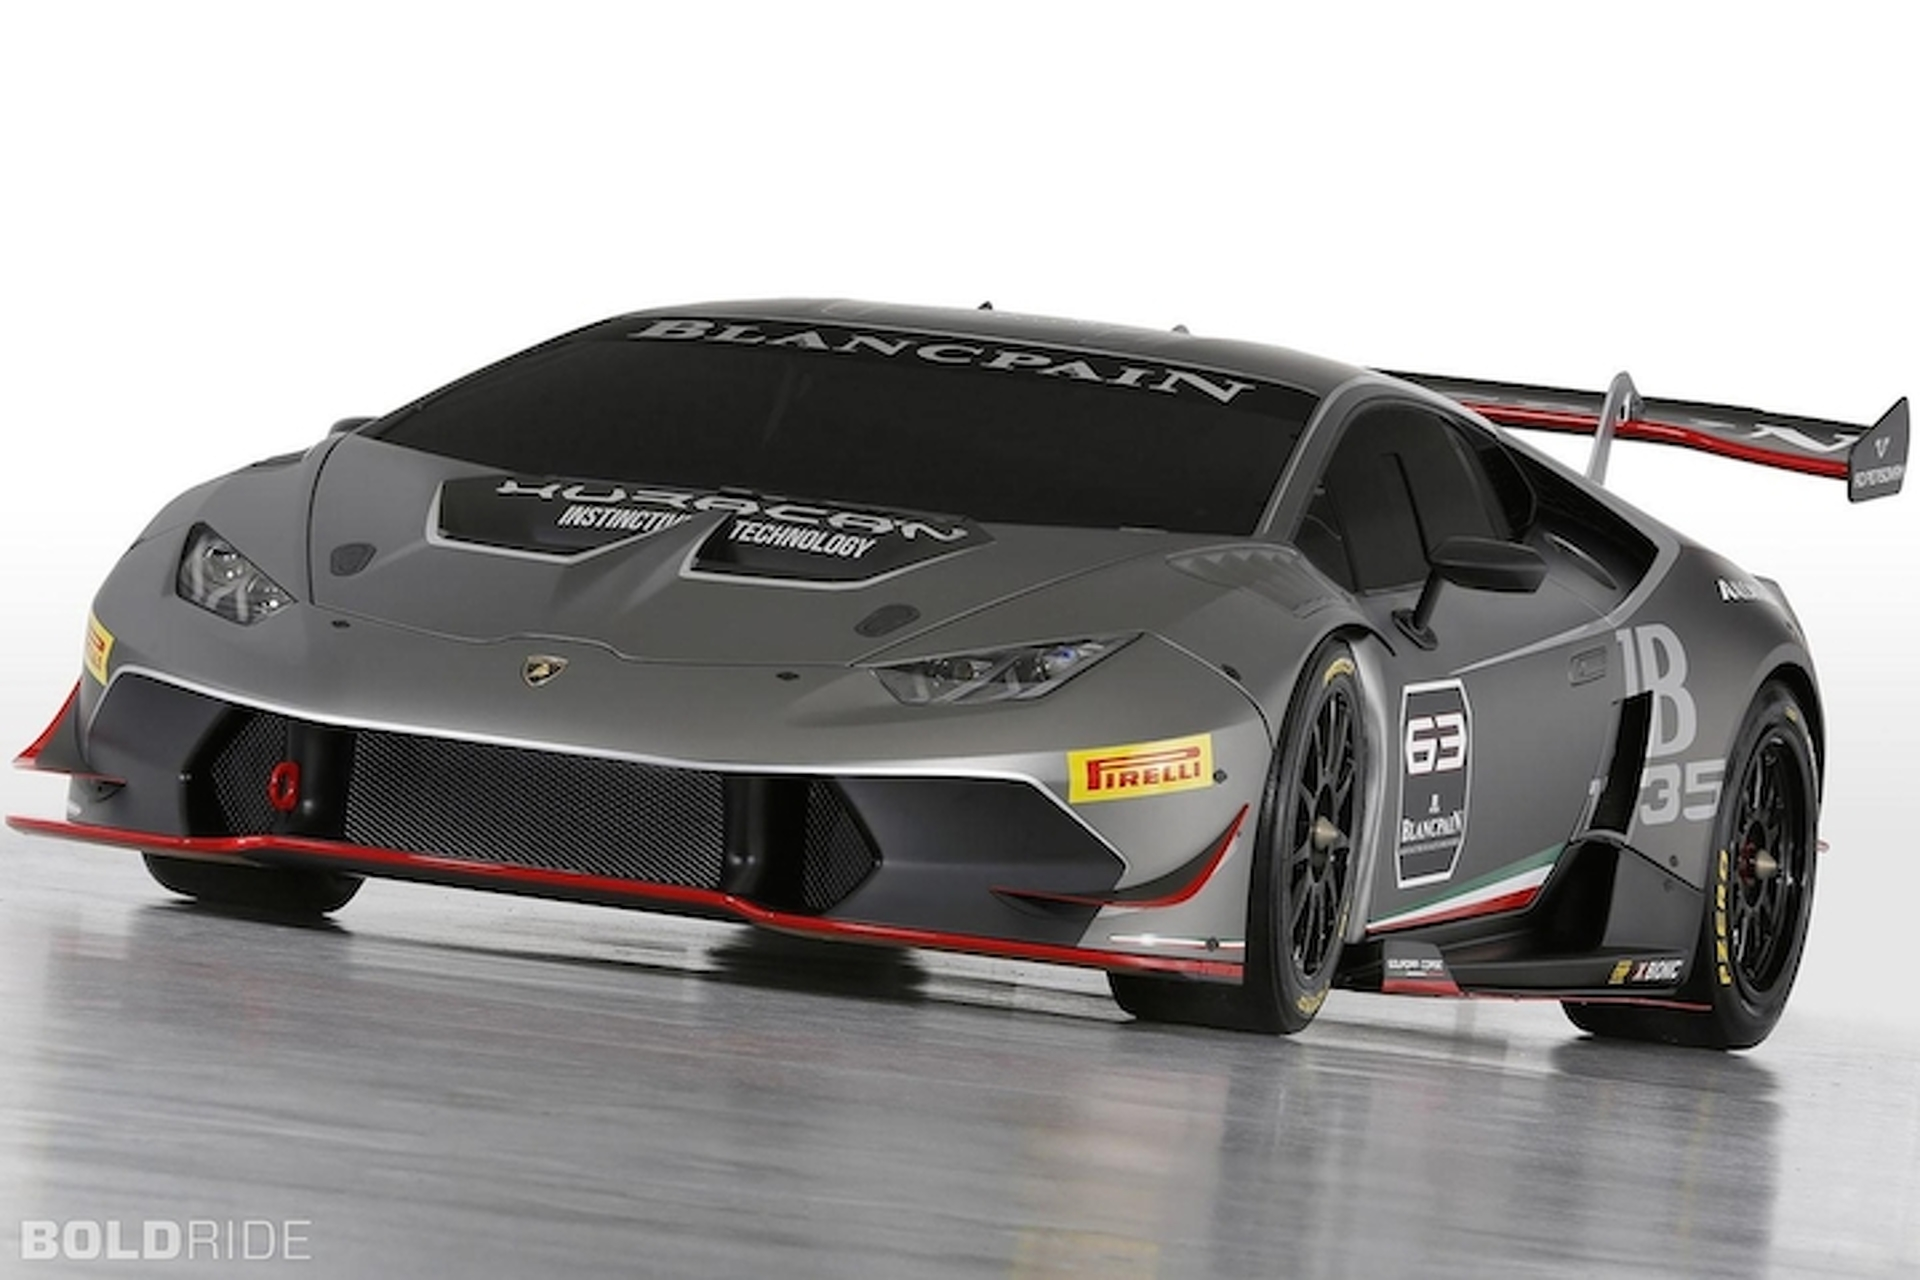 Lamborghini Huracan Super Trofeo Looks Ready to Race: Pebble Beach